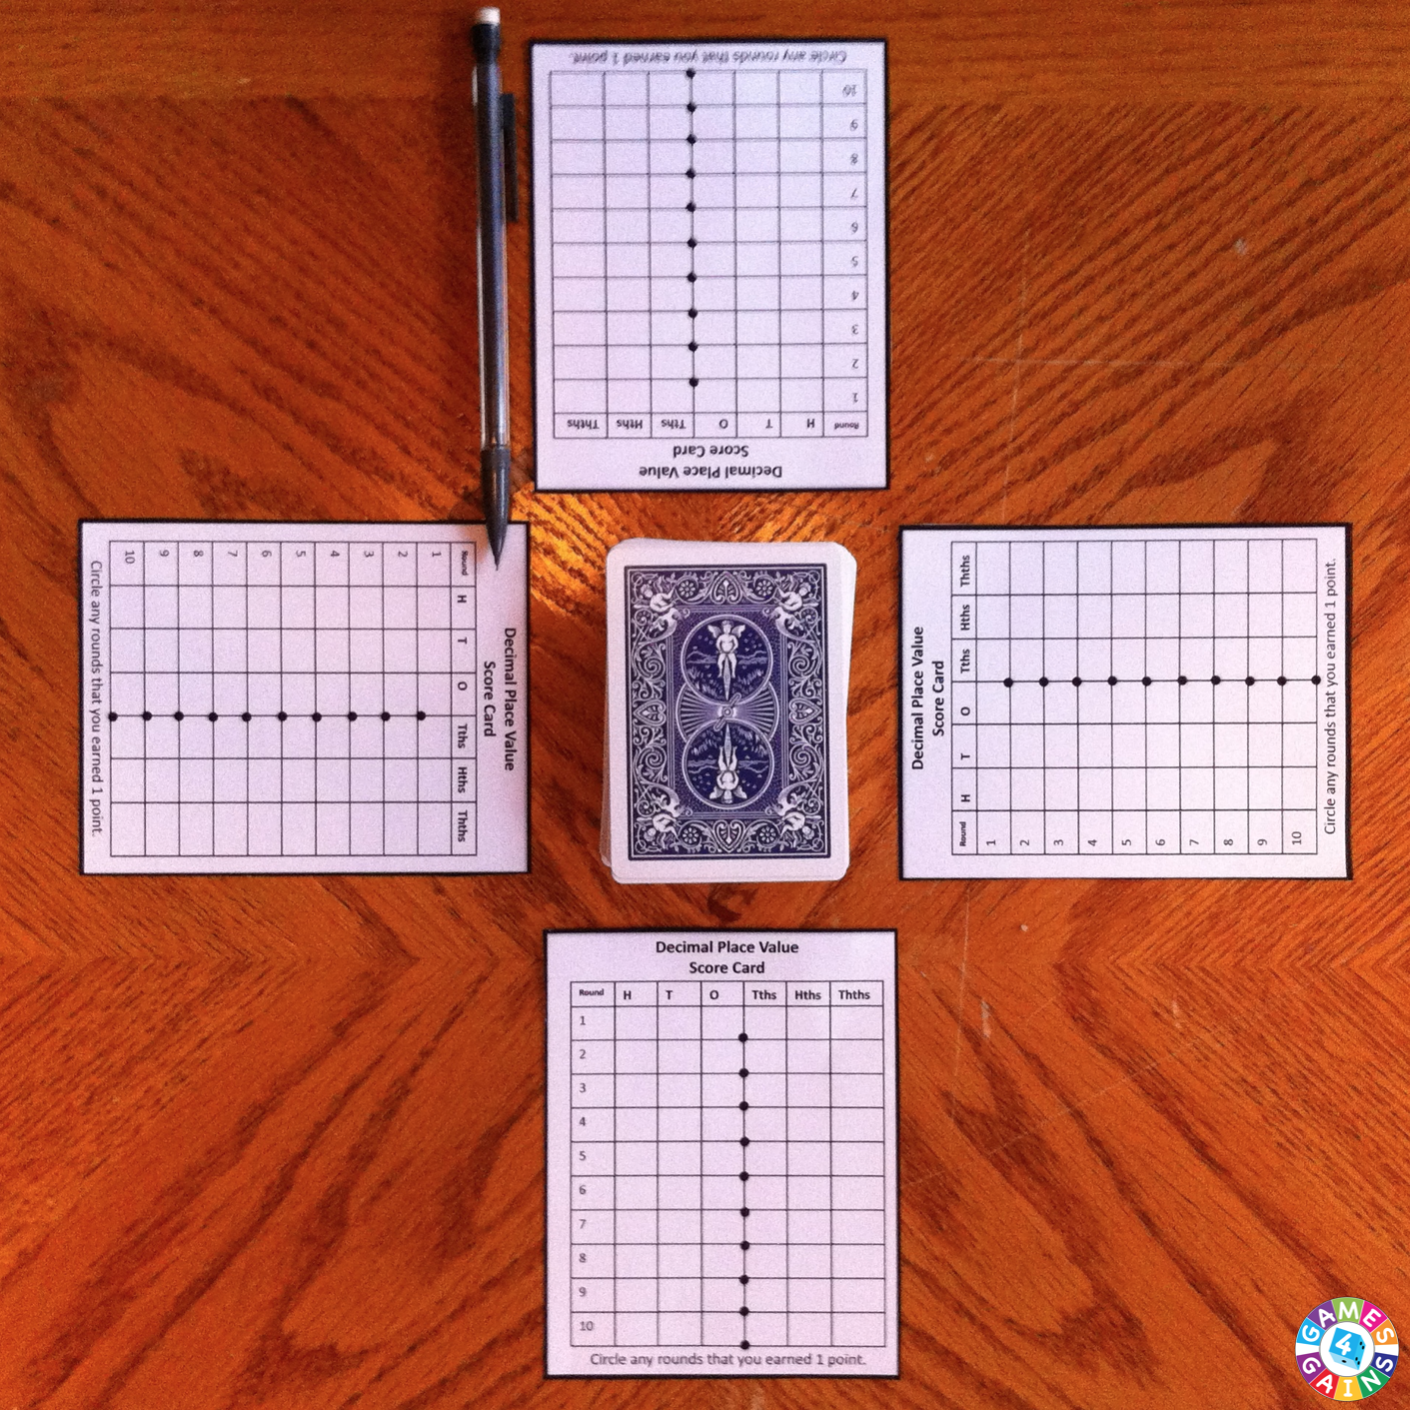 Decimal place value with playing cards decimal places math and decimal place value with playing cards nvjuhfo Image collections